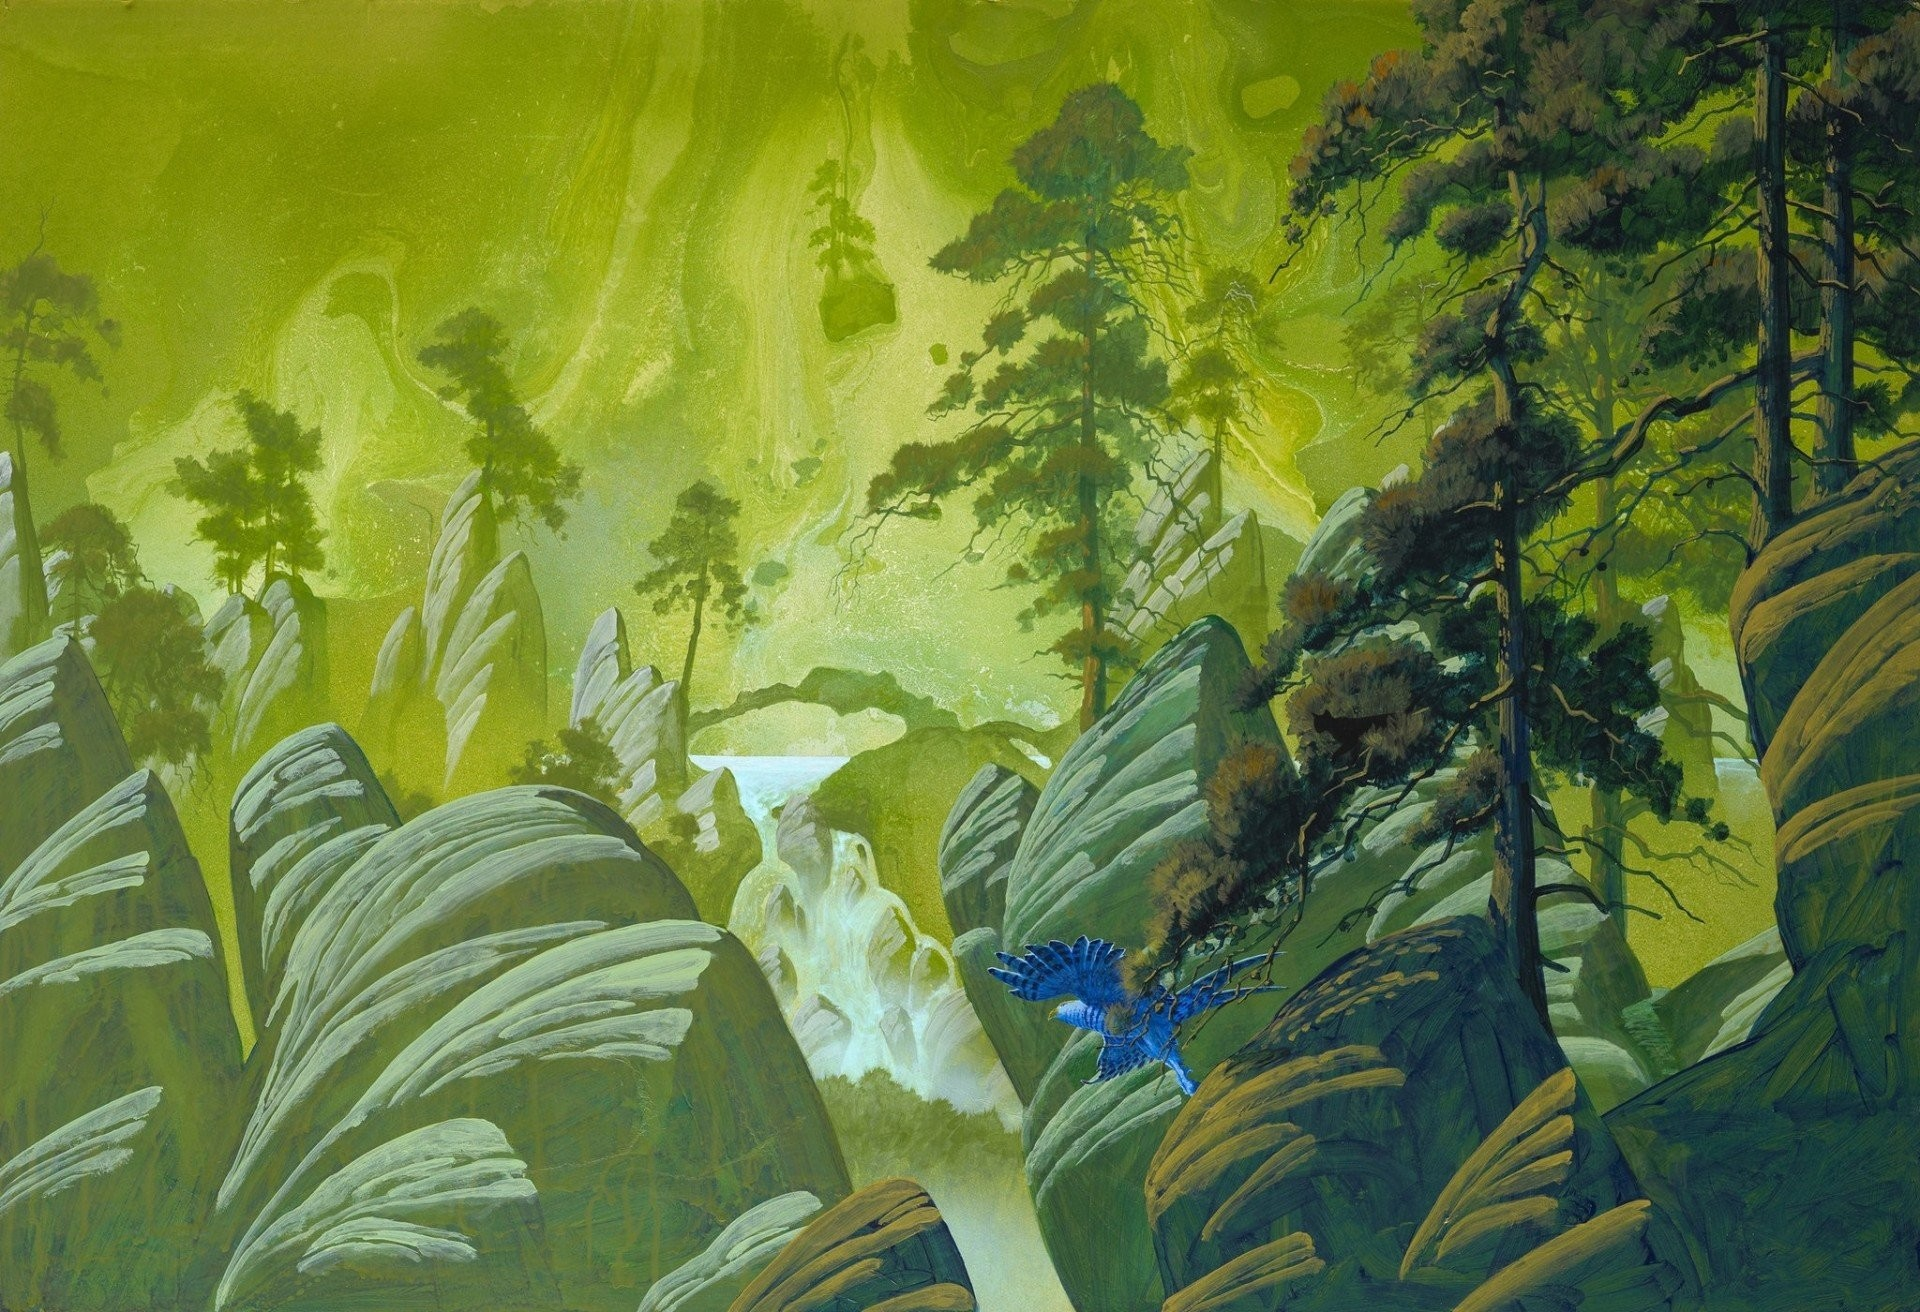 1920x1312 stones art waterfall pine birds tree roger dean fiction rock